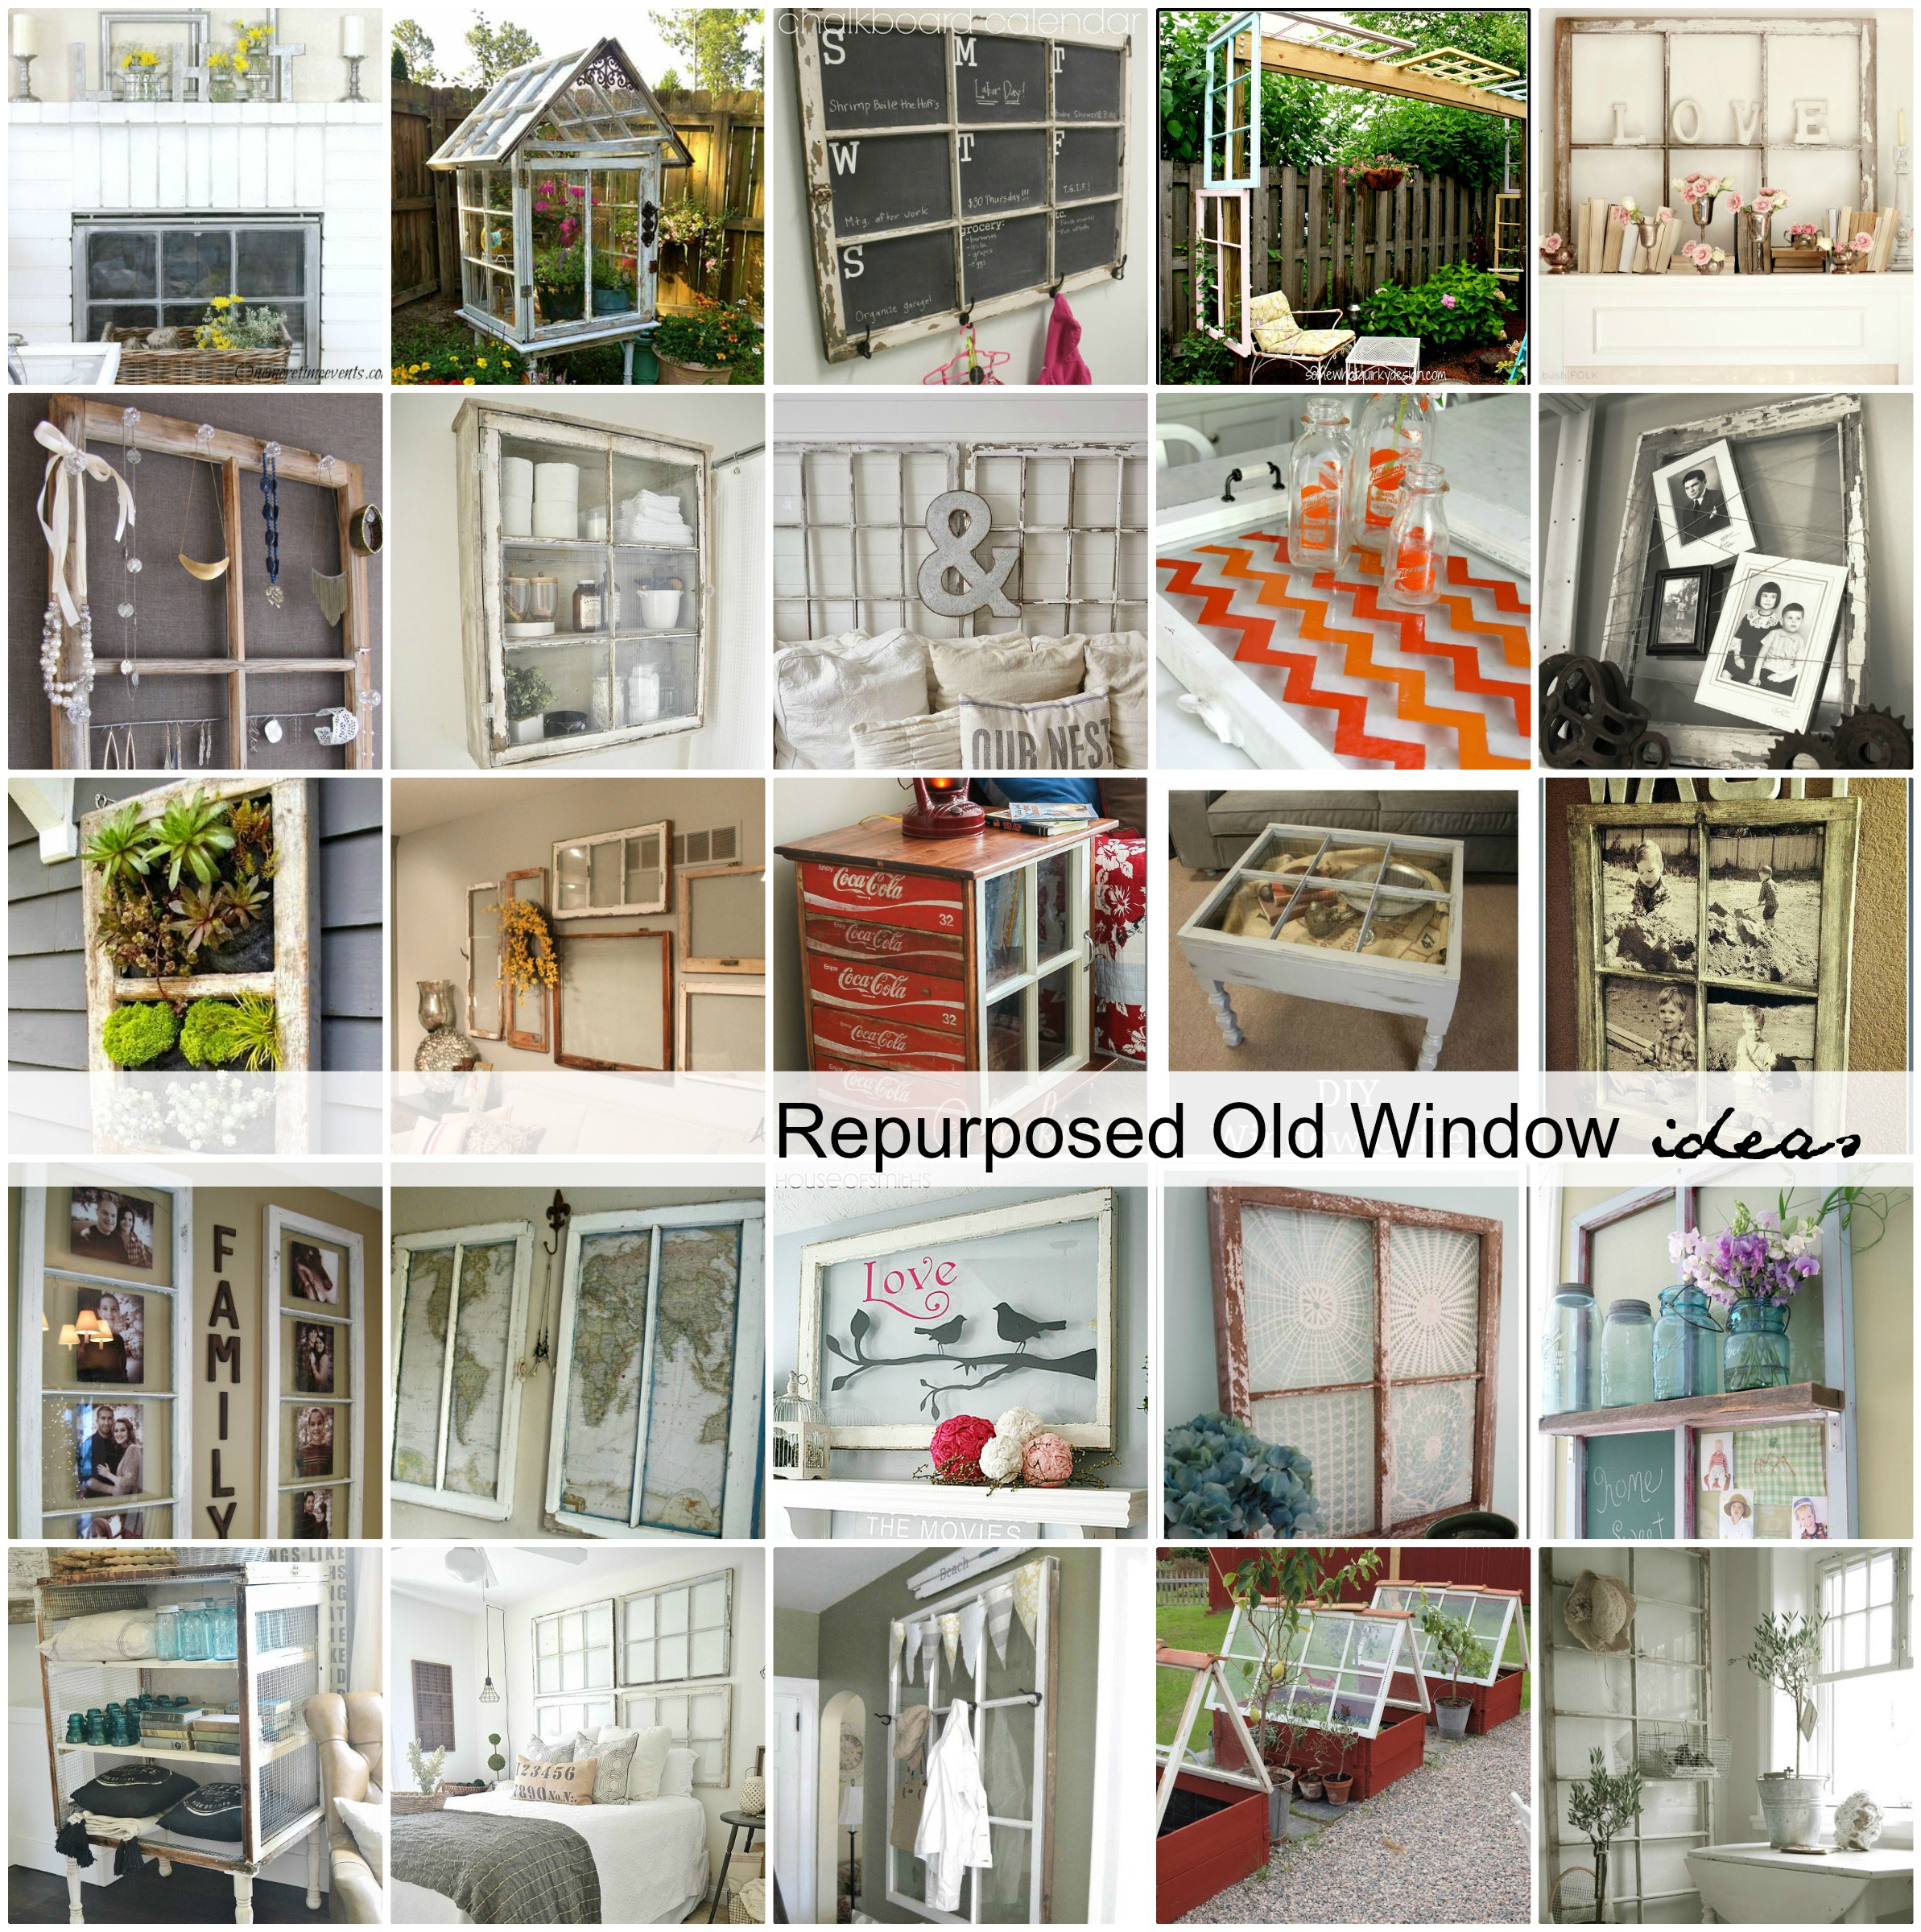 Repurposed old window ideas the idea room for Repurposed home decorating ideas